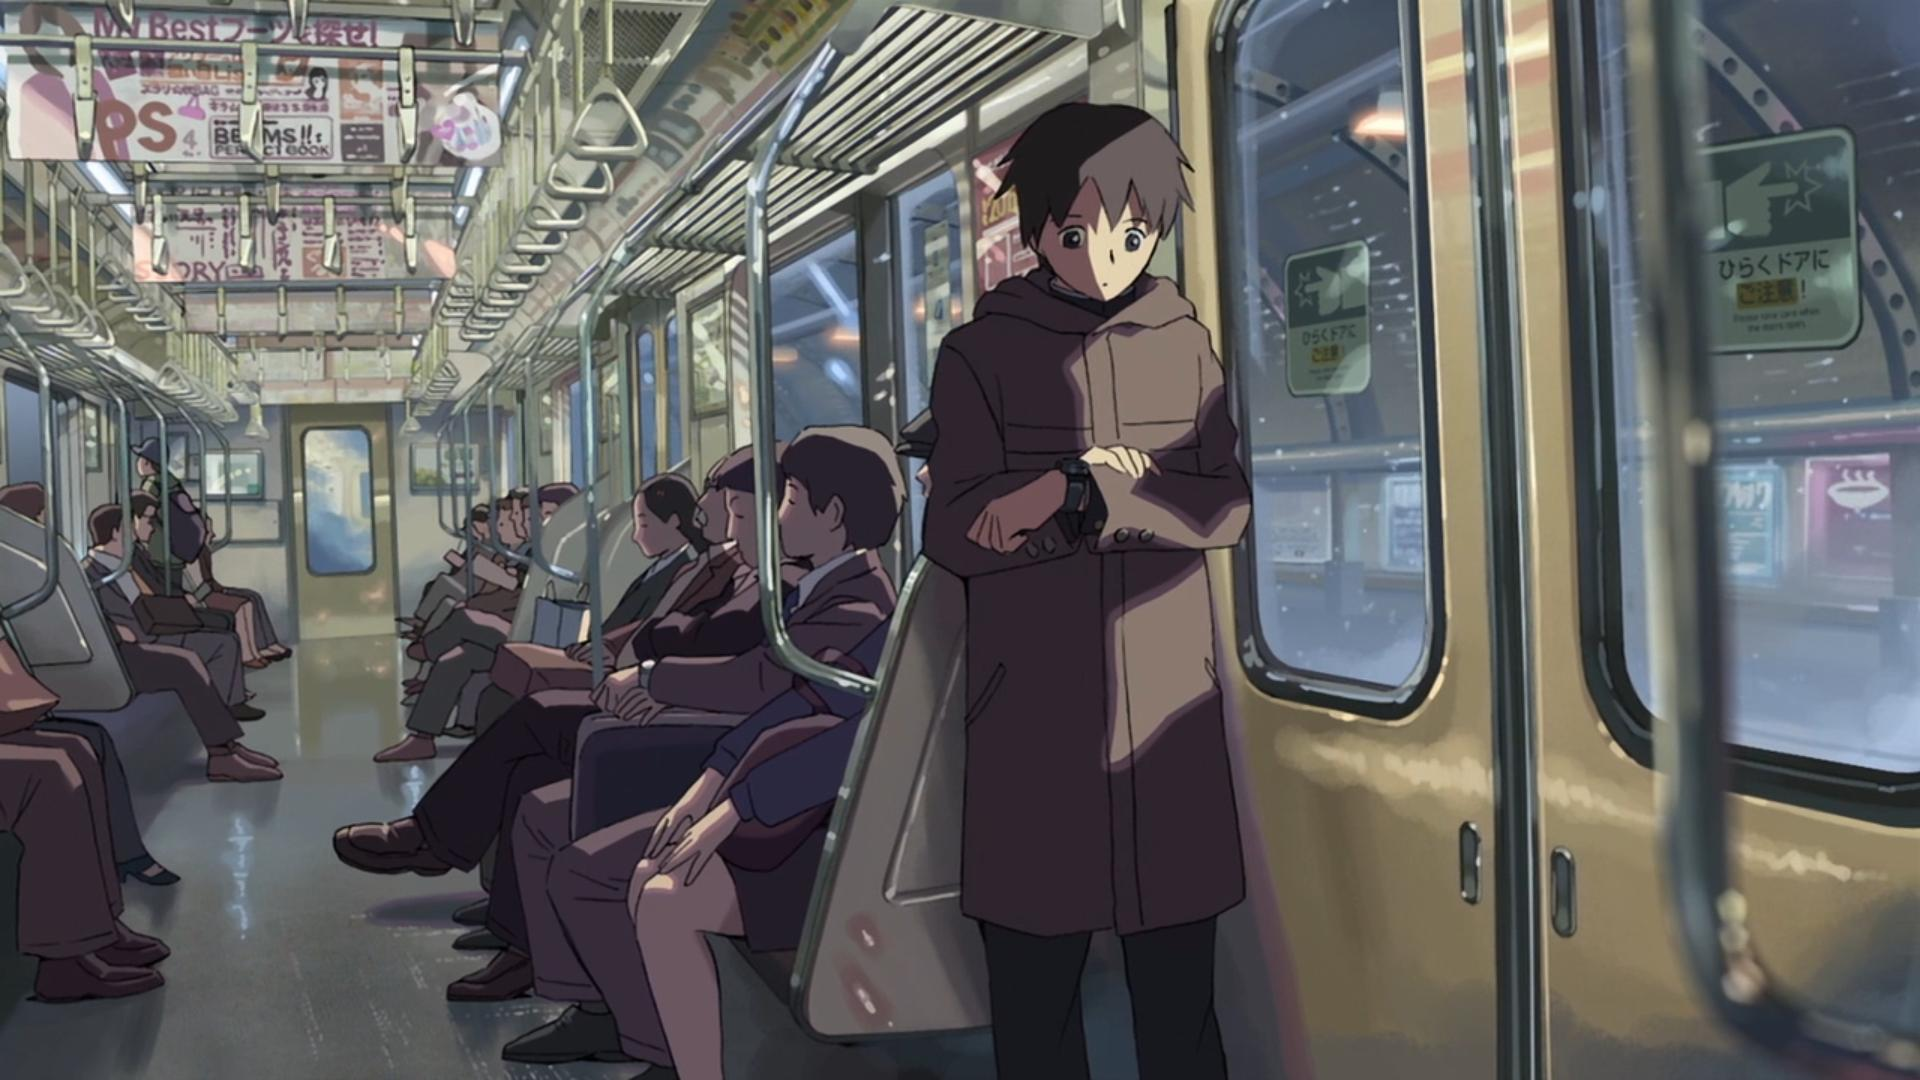 Anime monday 5 centimeters per second